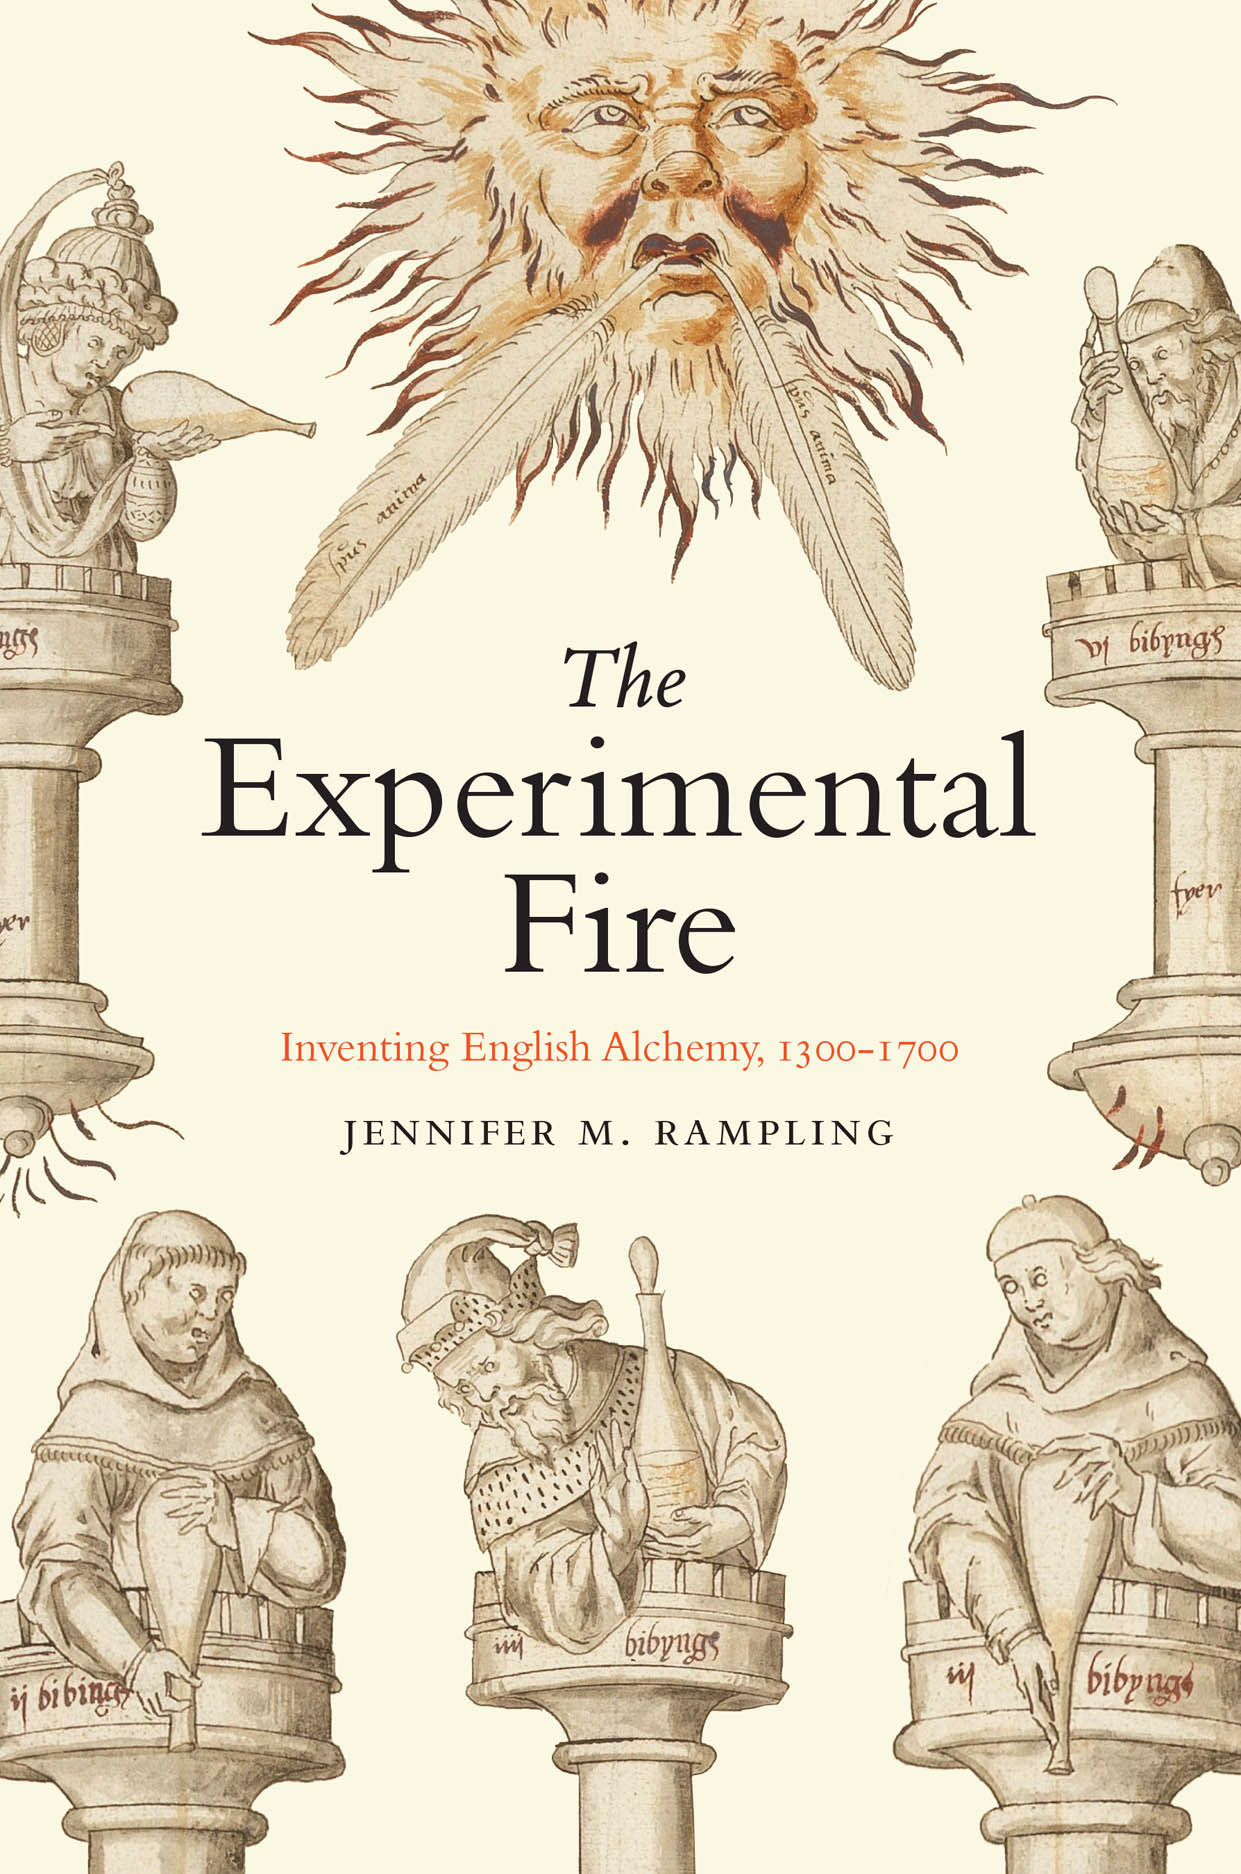 The Experimental Fire: Inventing English Alchemy, 1300-1700